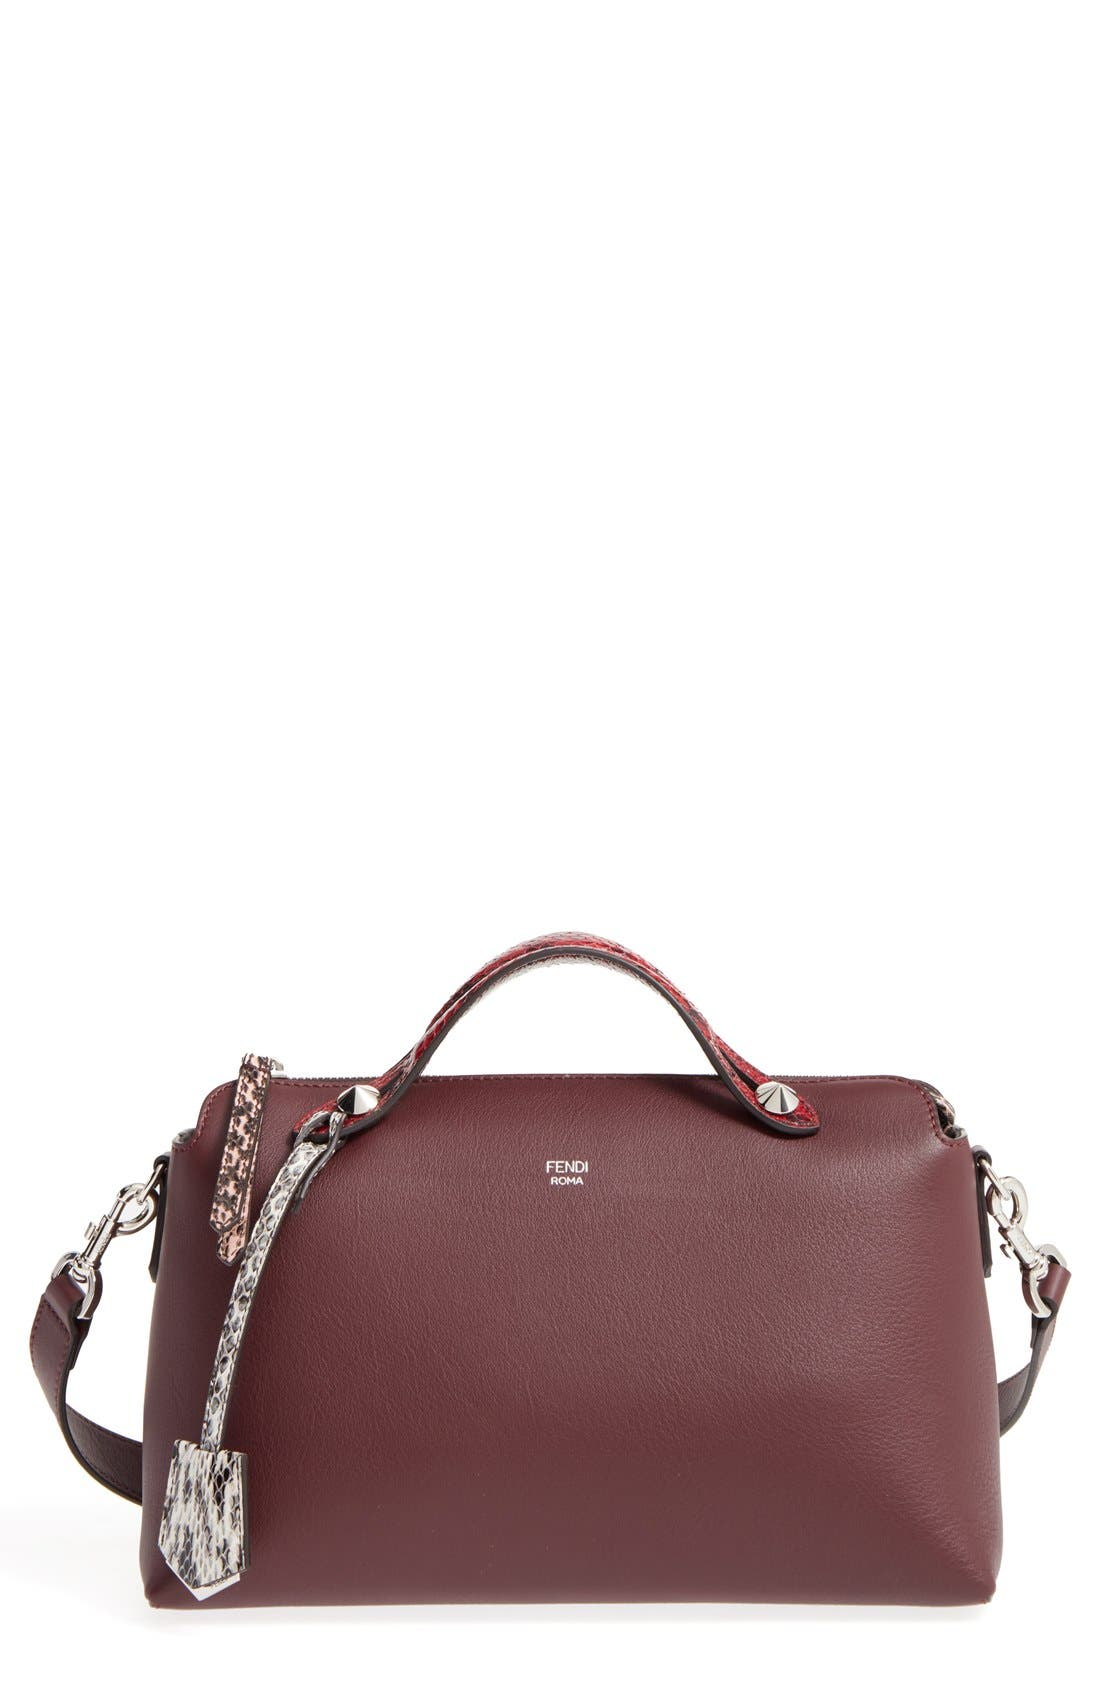 Fendi 'Medium By the Way' Calfskin Leather Shoulder Bag with Genuine Snakeskin Trim